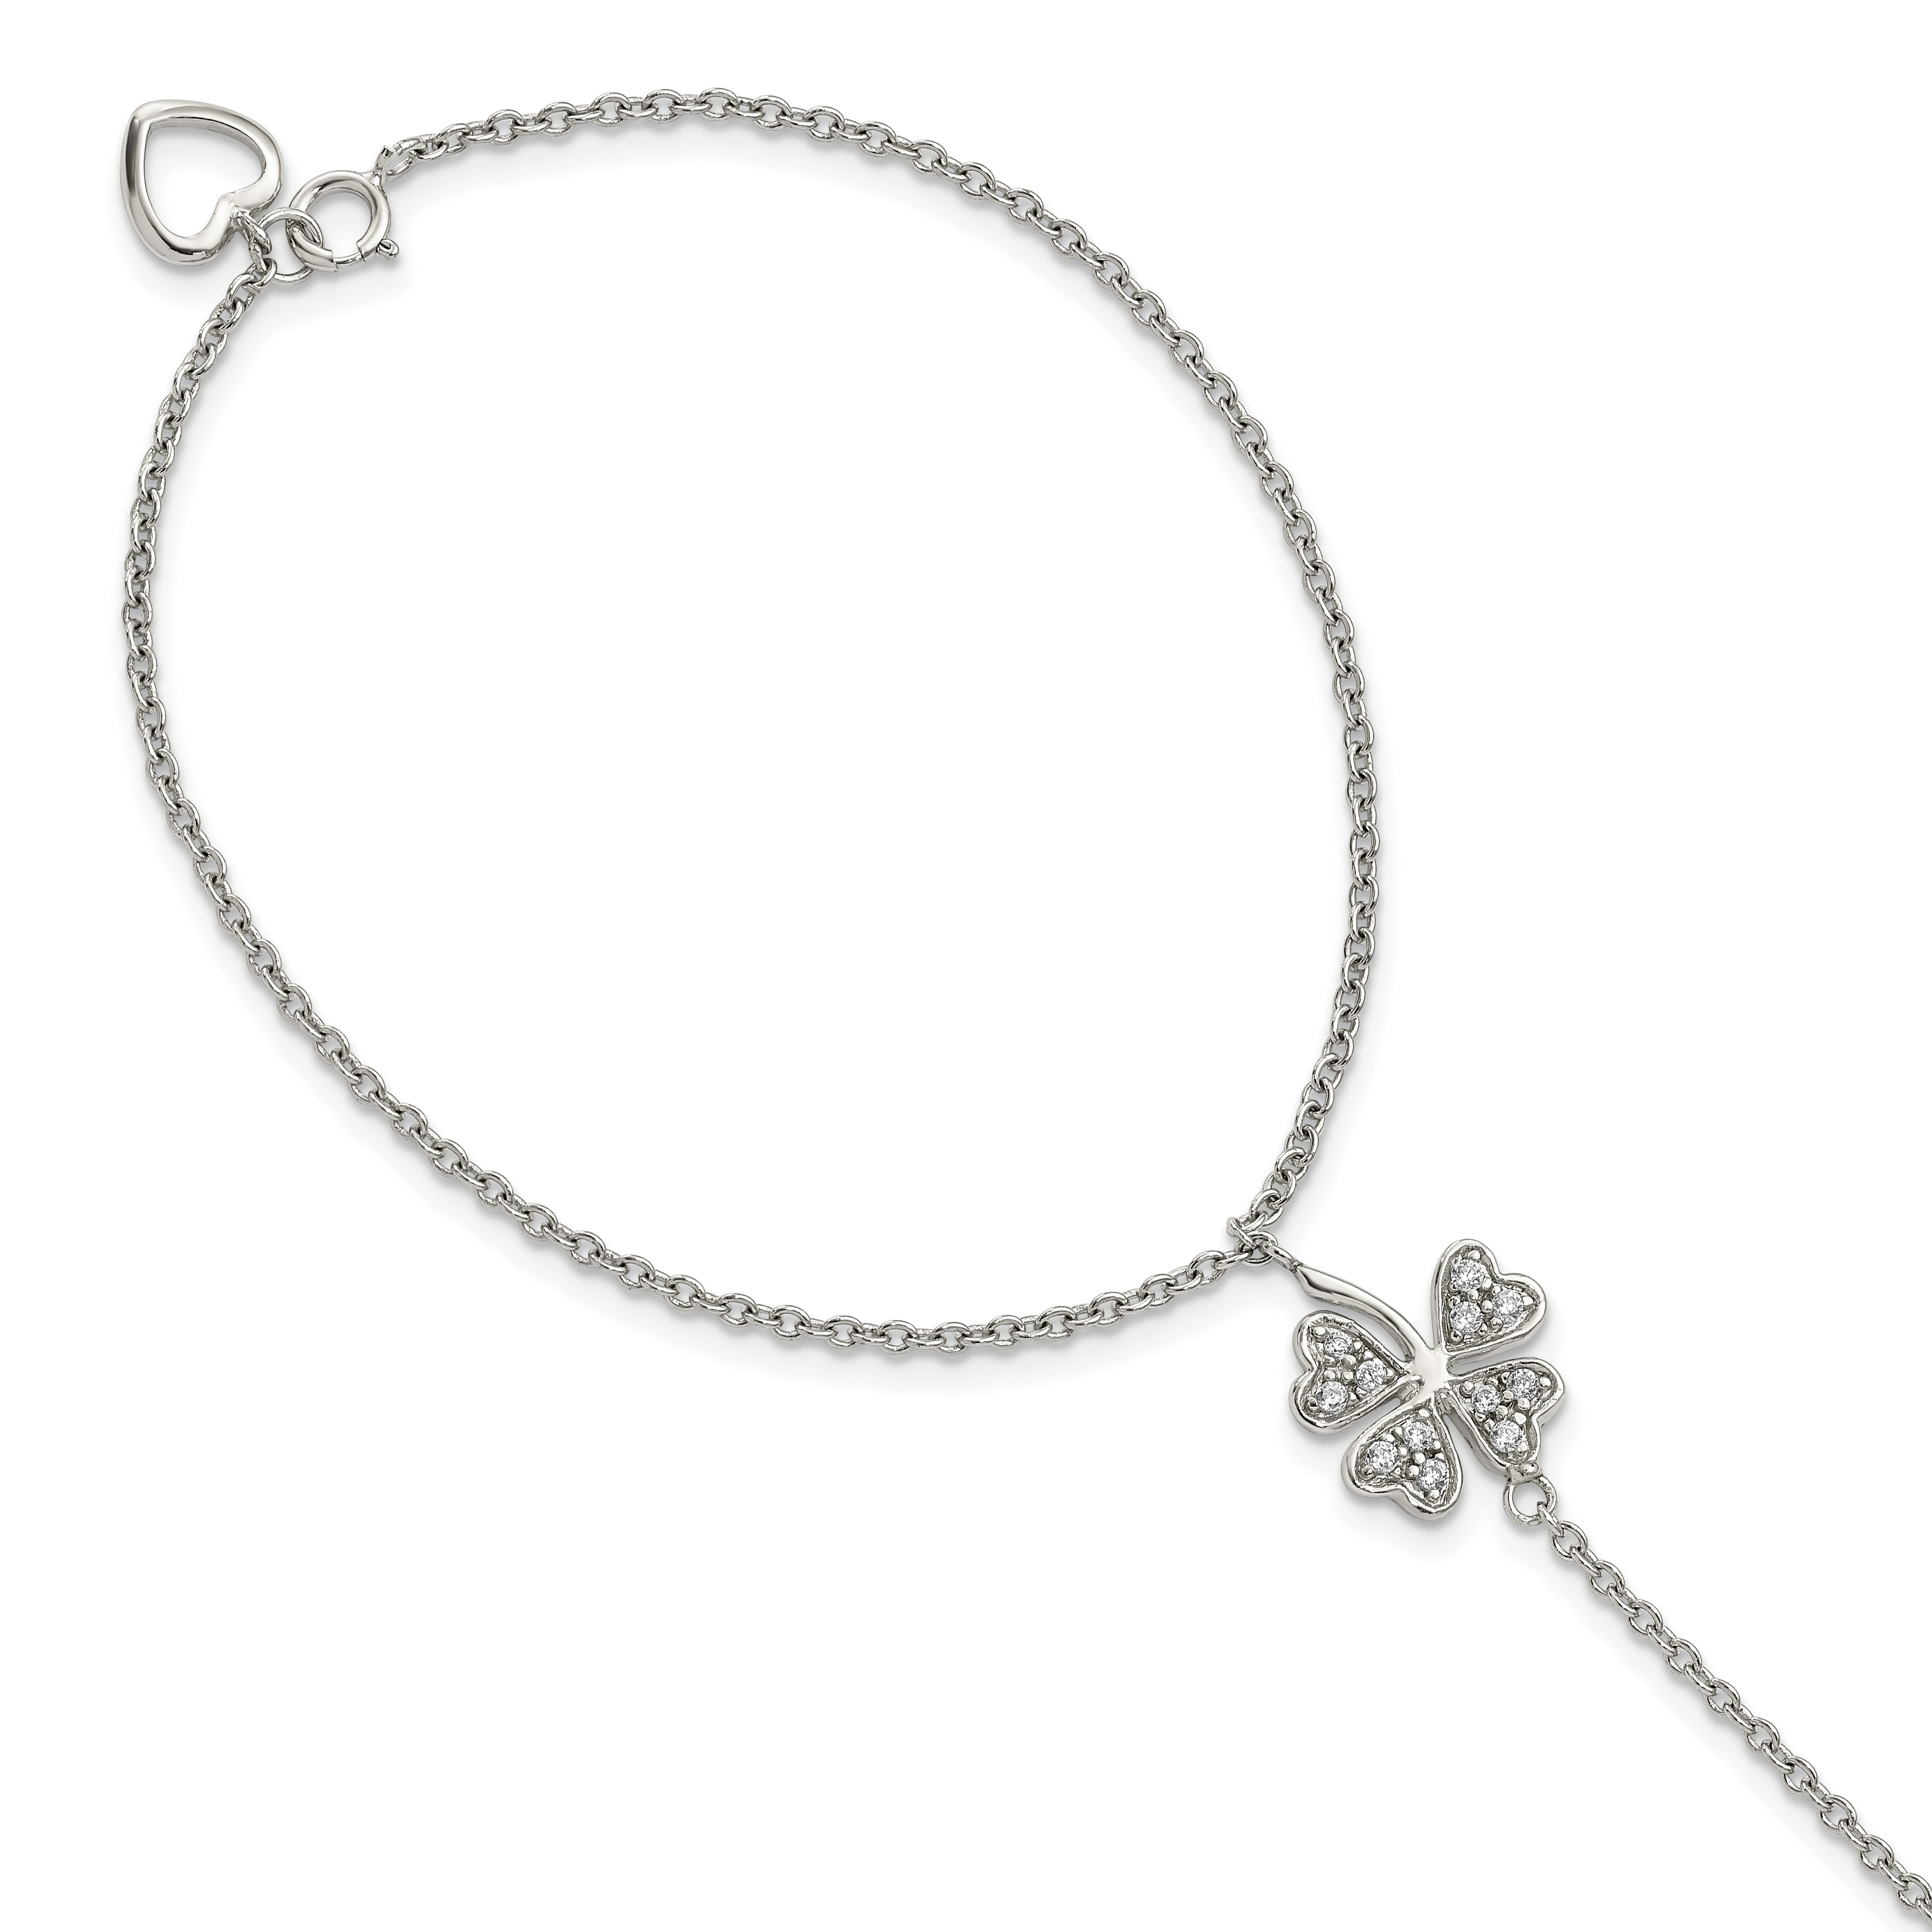 Jewelry Best Seller Sterling Silver Rhodium-plated Polished with CZ Leaf Chain Slide